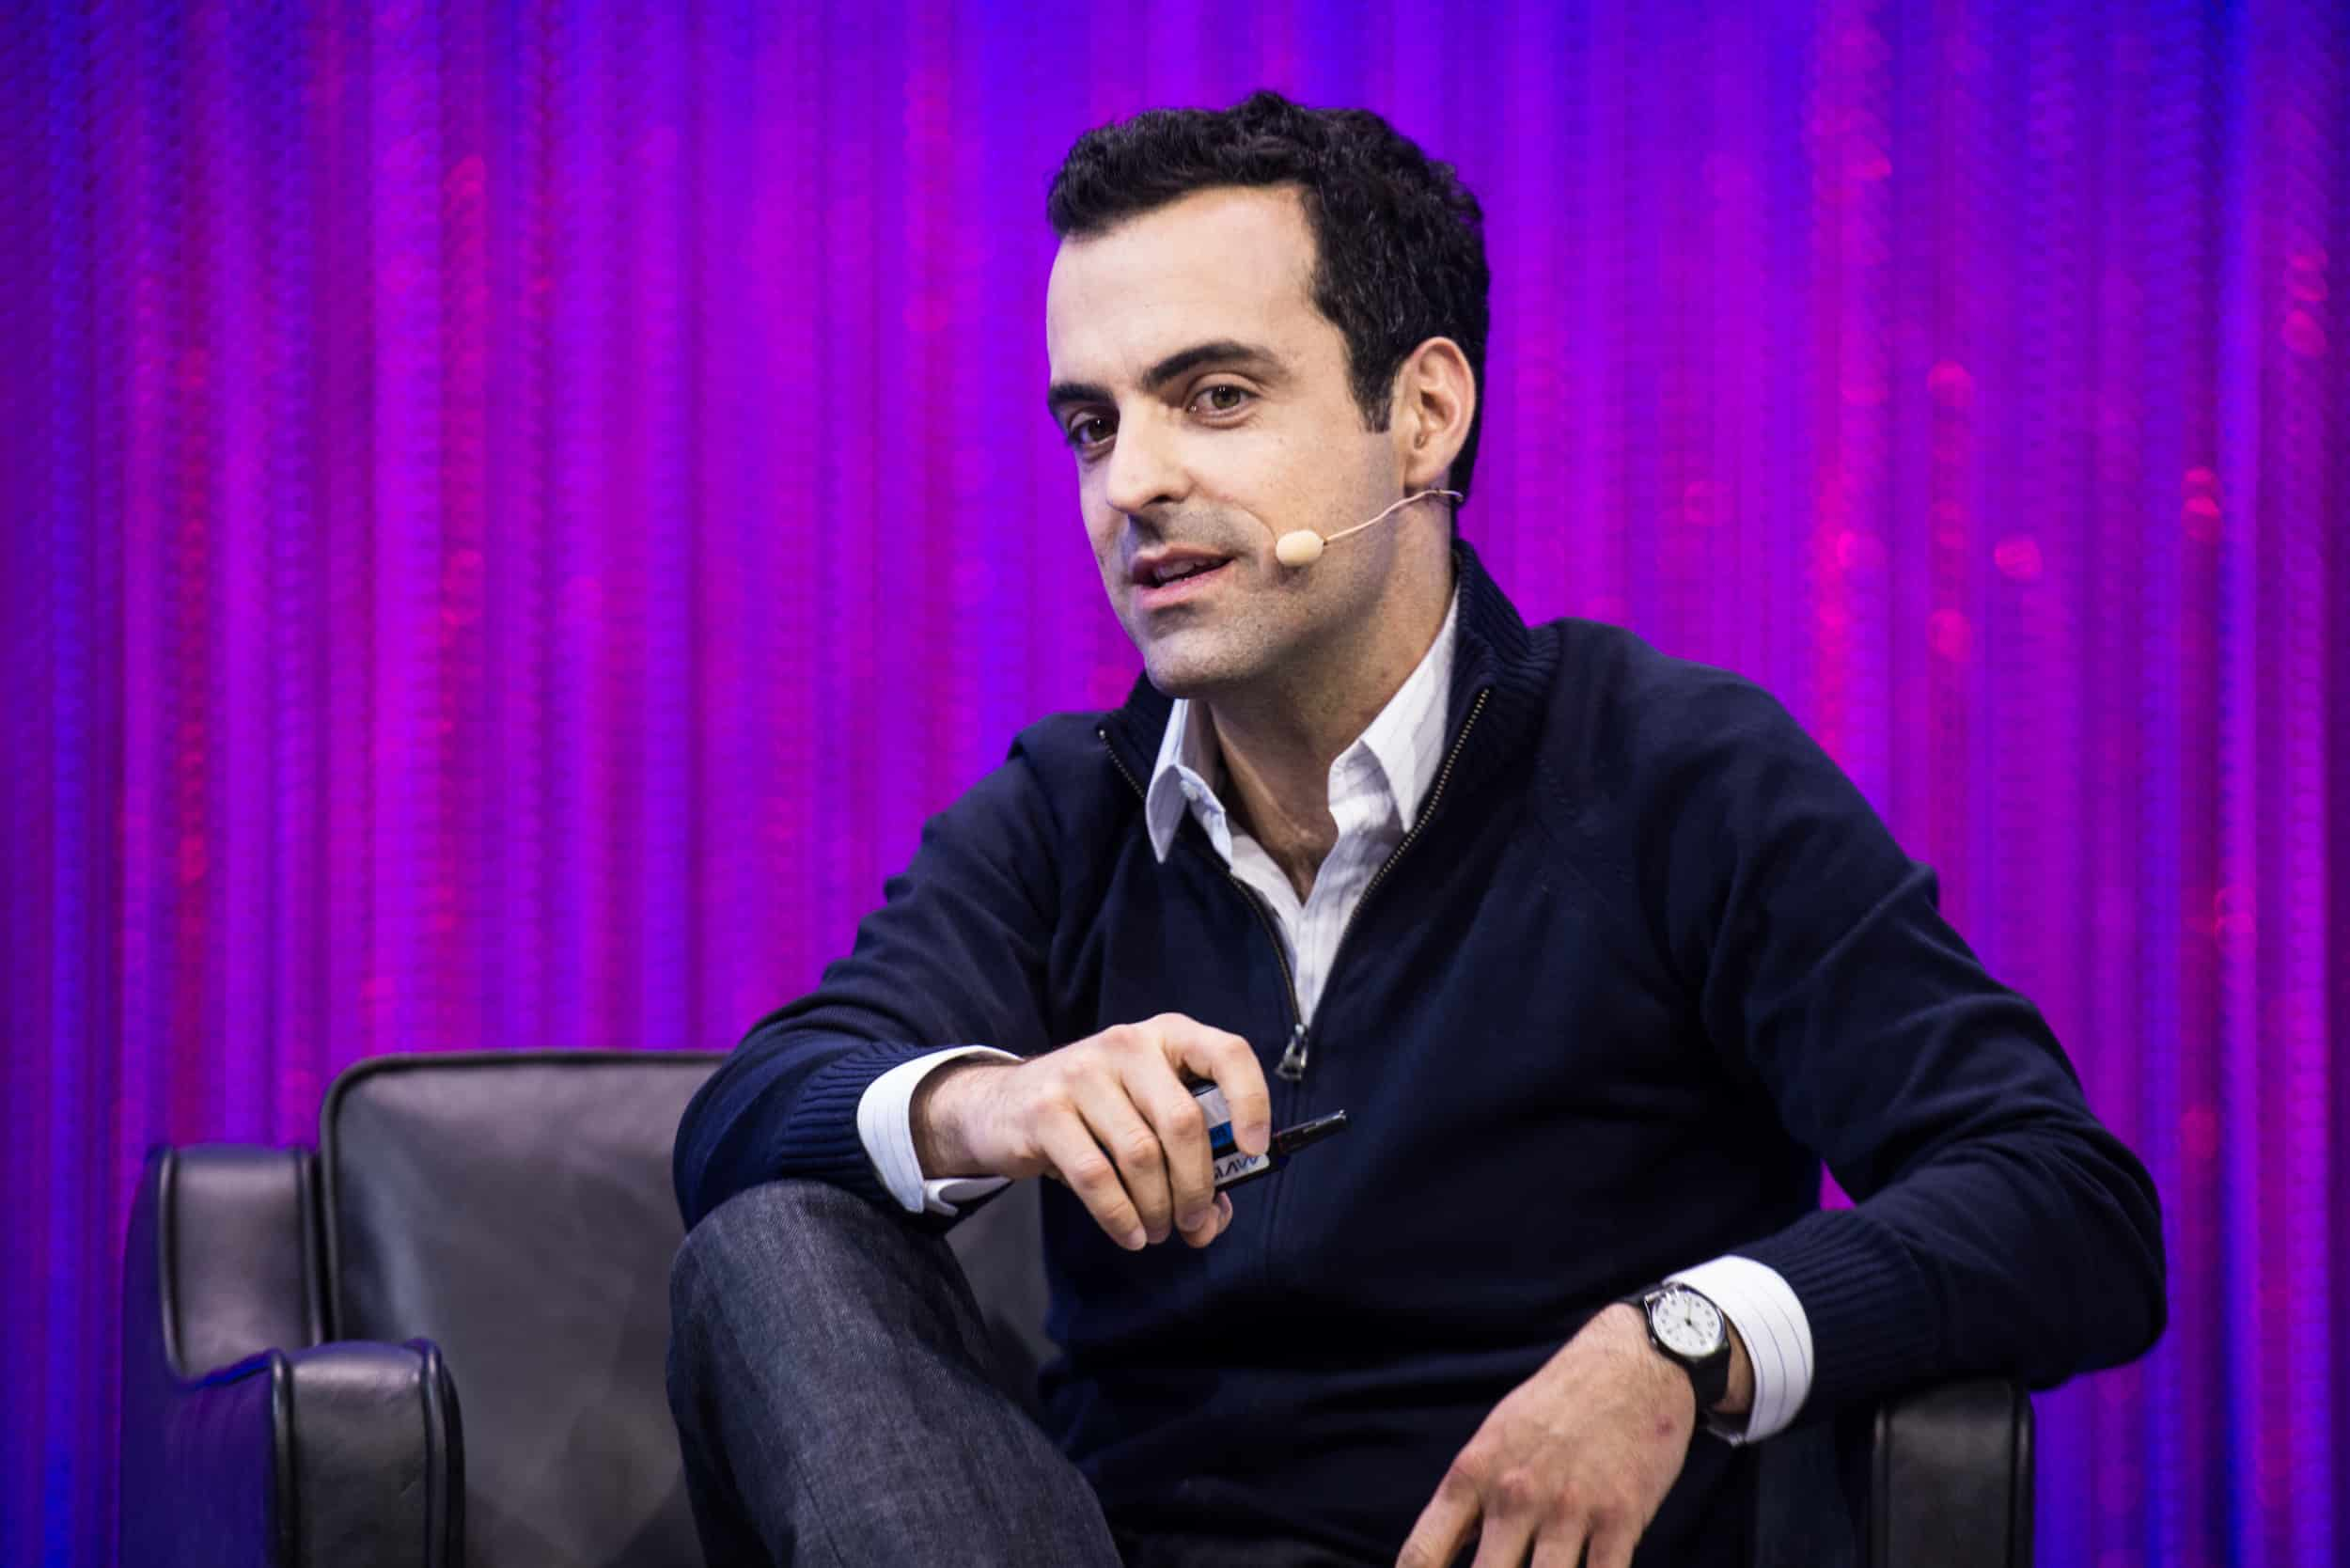 LE WEB PARIS 2013 - CONFERENCES - PLENARY 1 - HUGO BARRA